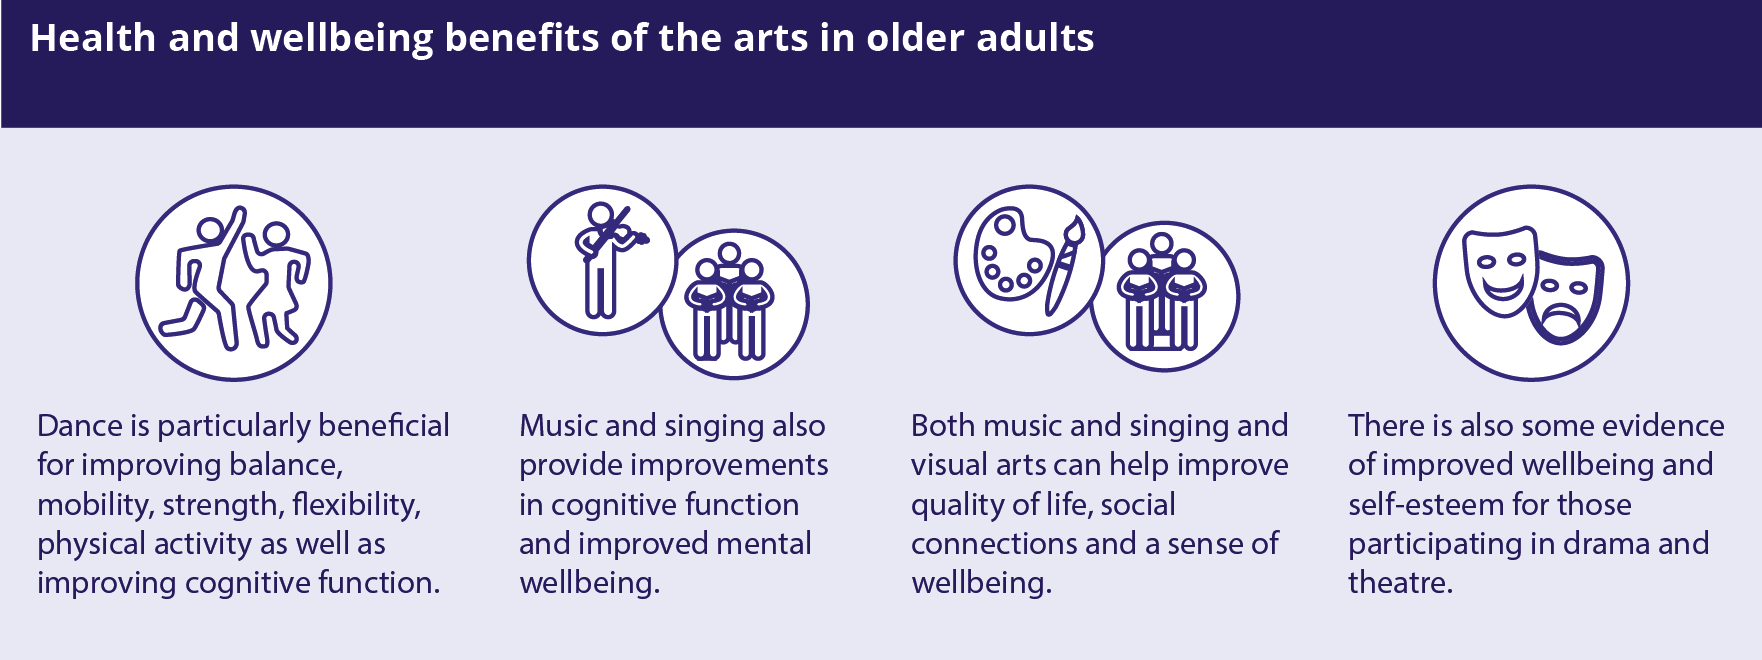 New report highlights positive health and wellbeing impacts of arts and creativity in later life